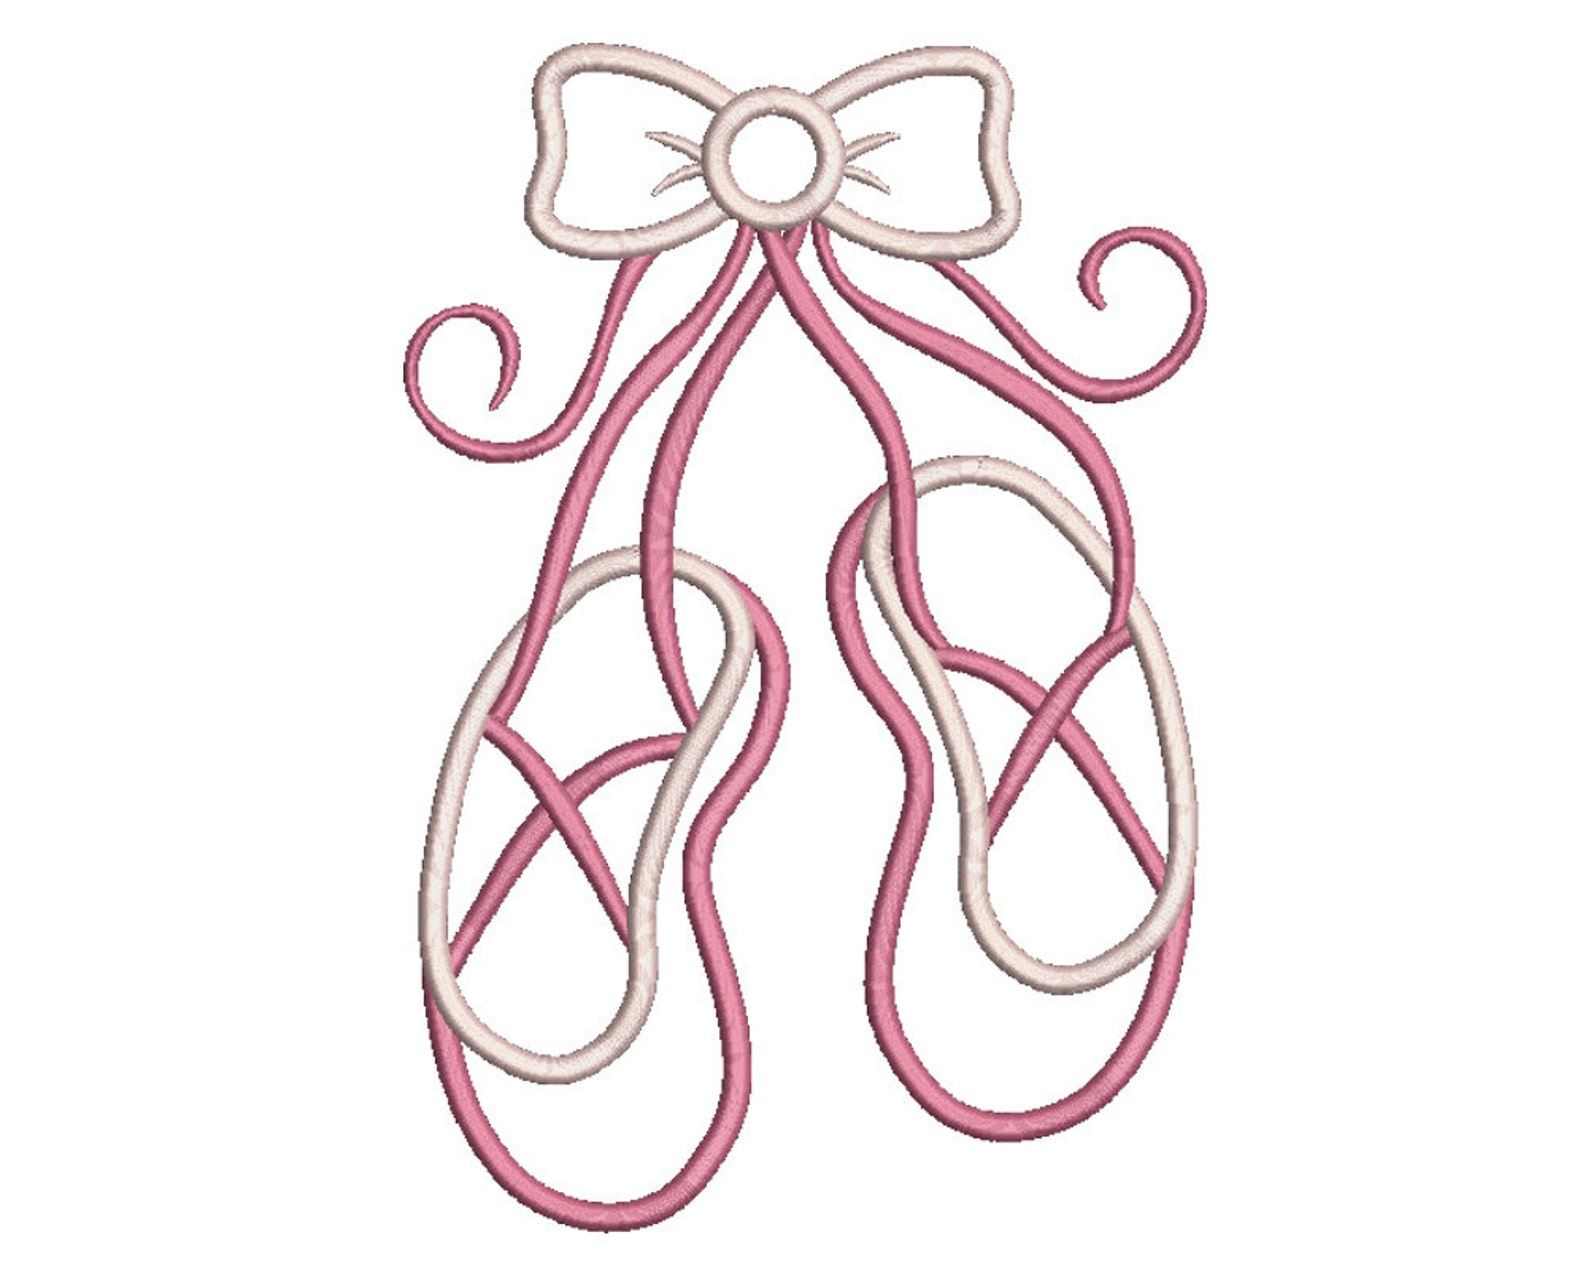 ballet shoes applique design - machine embroidery - instant download - 4x4, 5x7, 6x10, 8x12